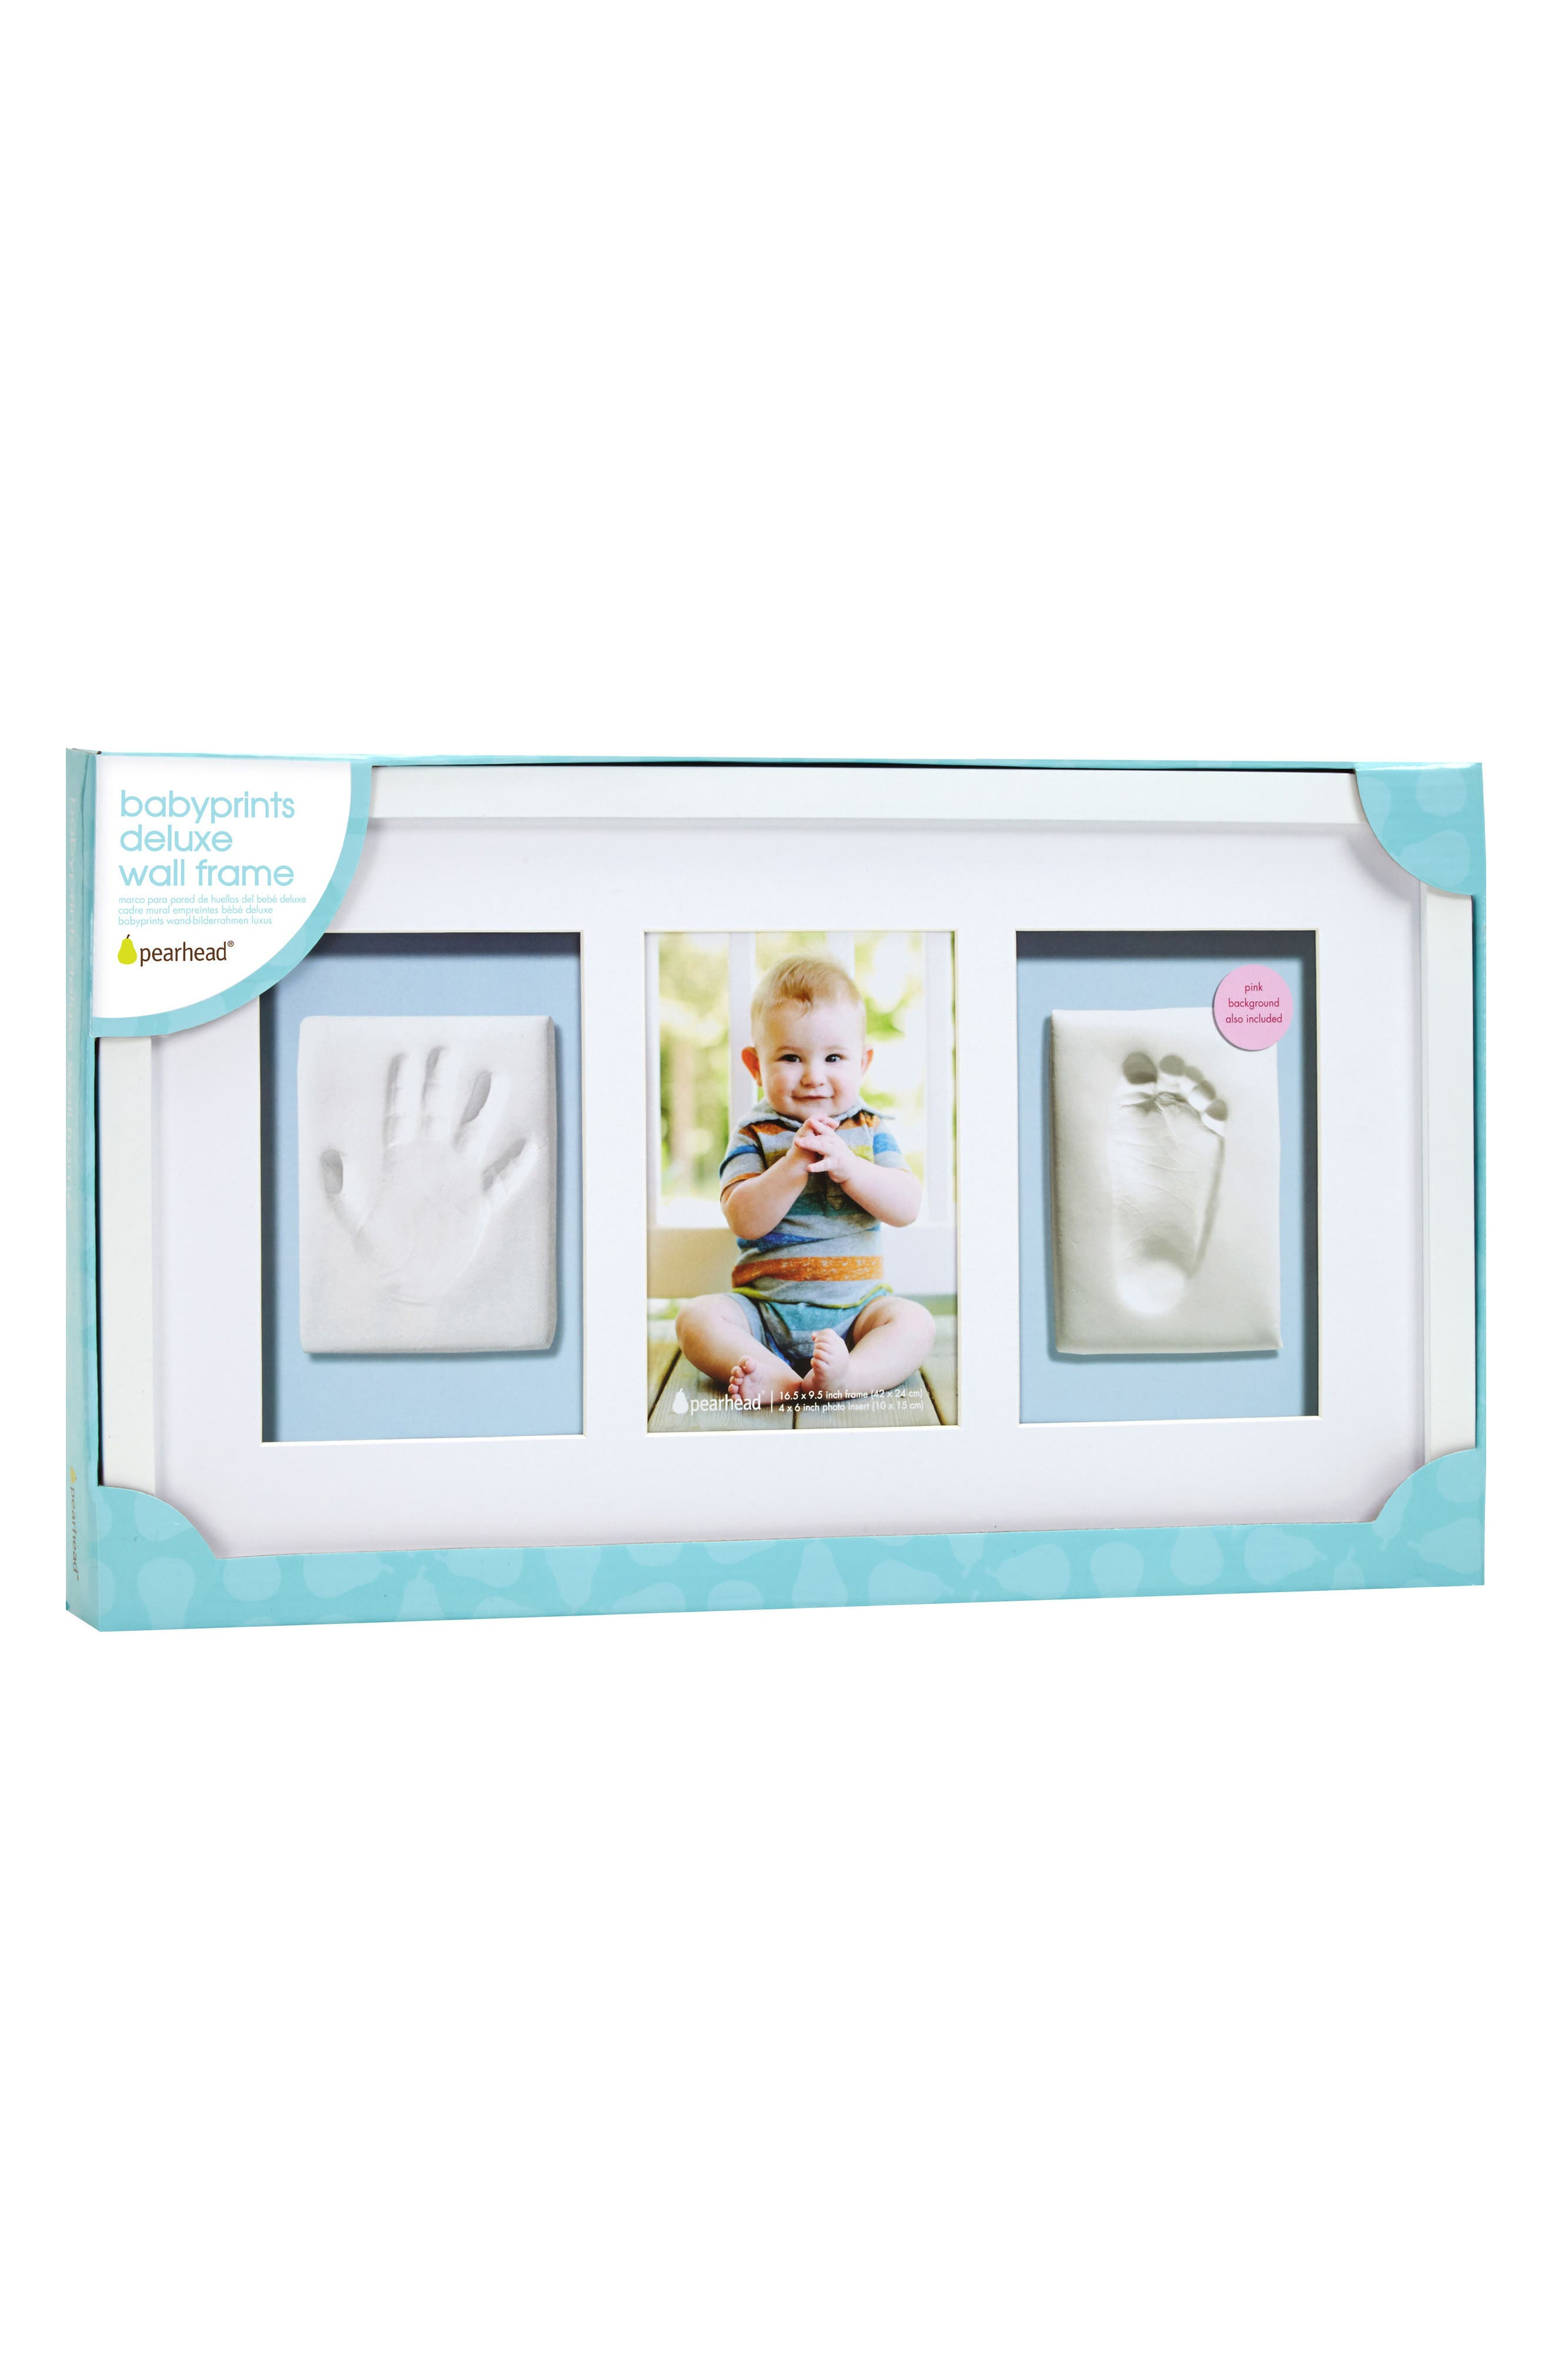 Babyprints Deluxe Wall Frame Kit,                         Main,                         color, White